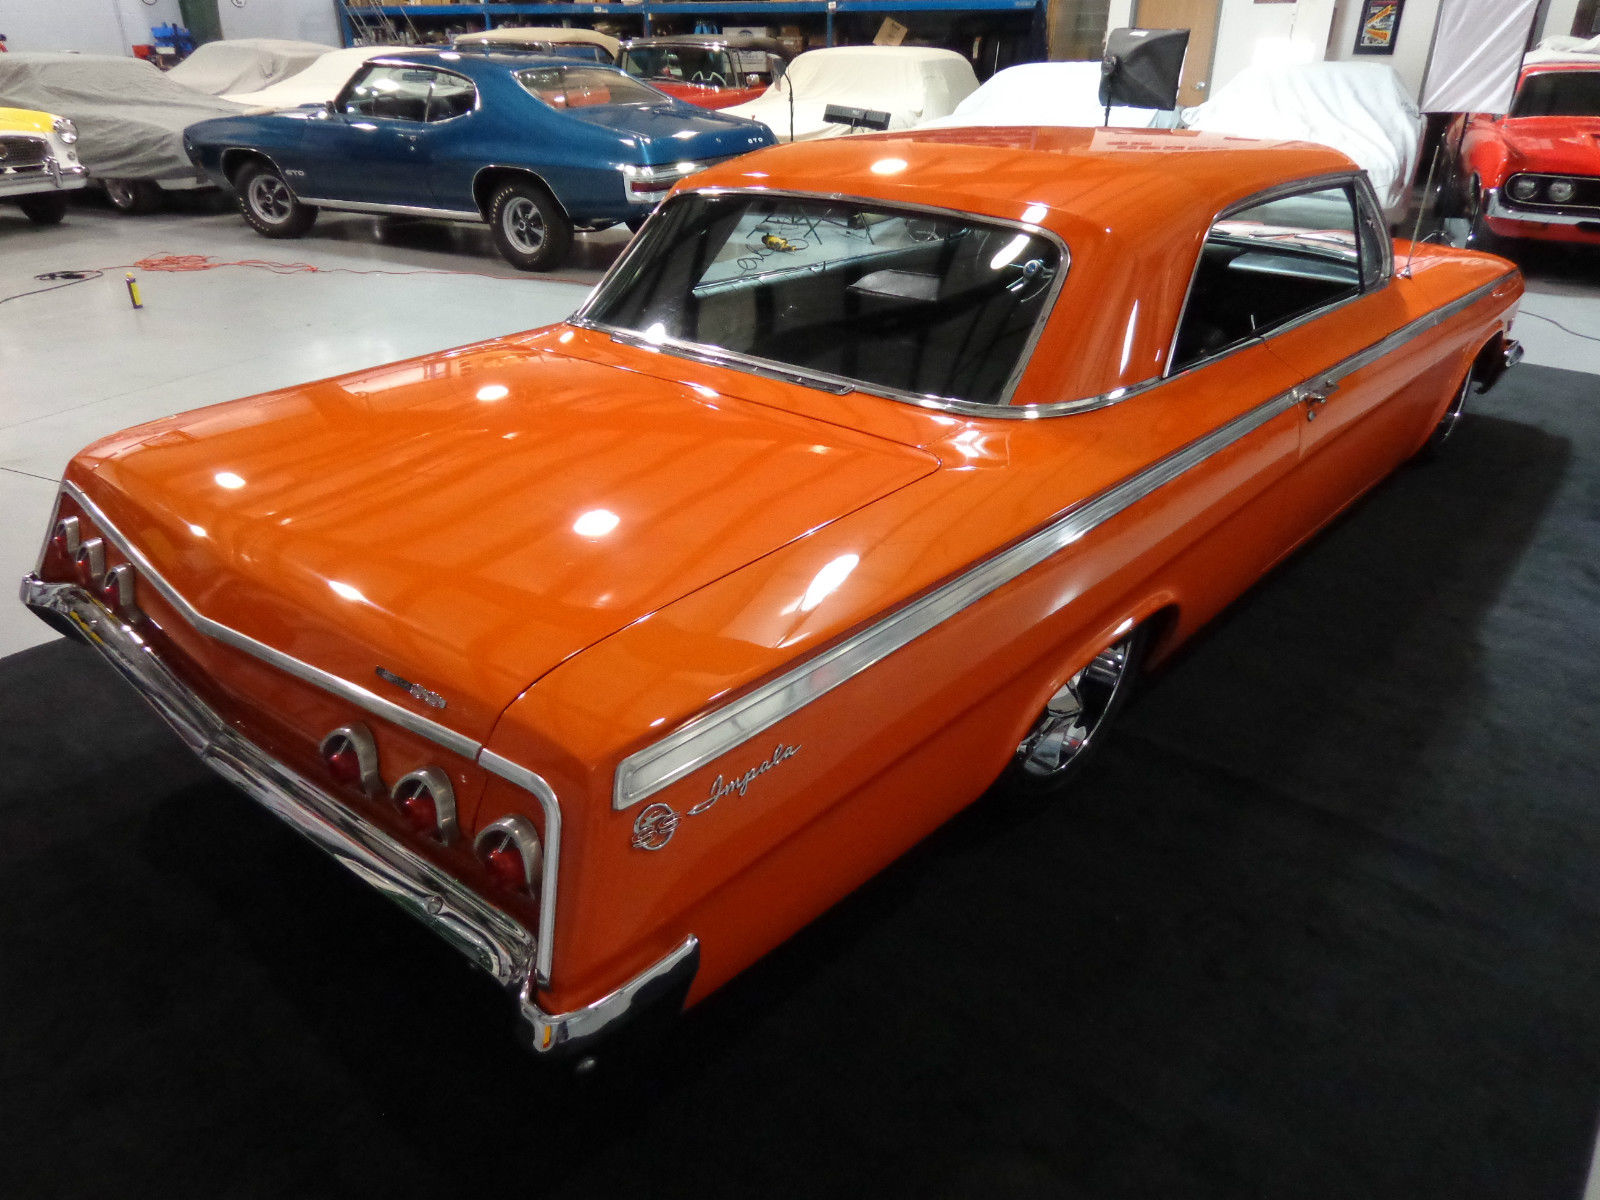 Chevy Impala Ss Clone Pro Touring Resto Mod Air Bagged Solid on Chevy Steering Column Wiring Harness